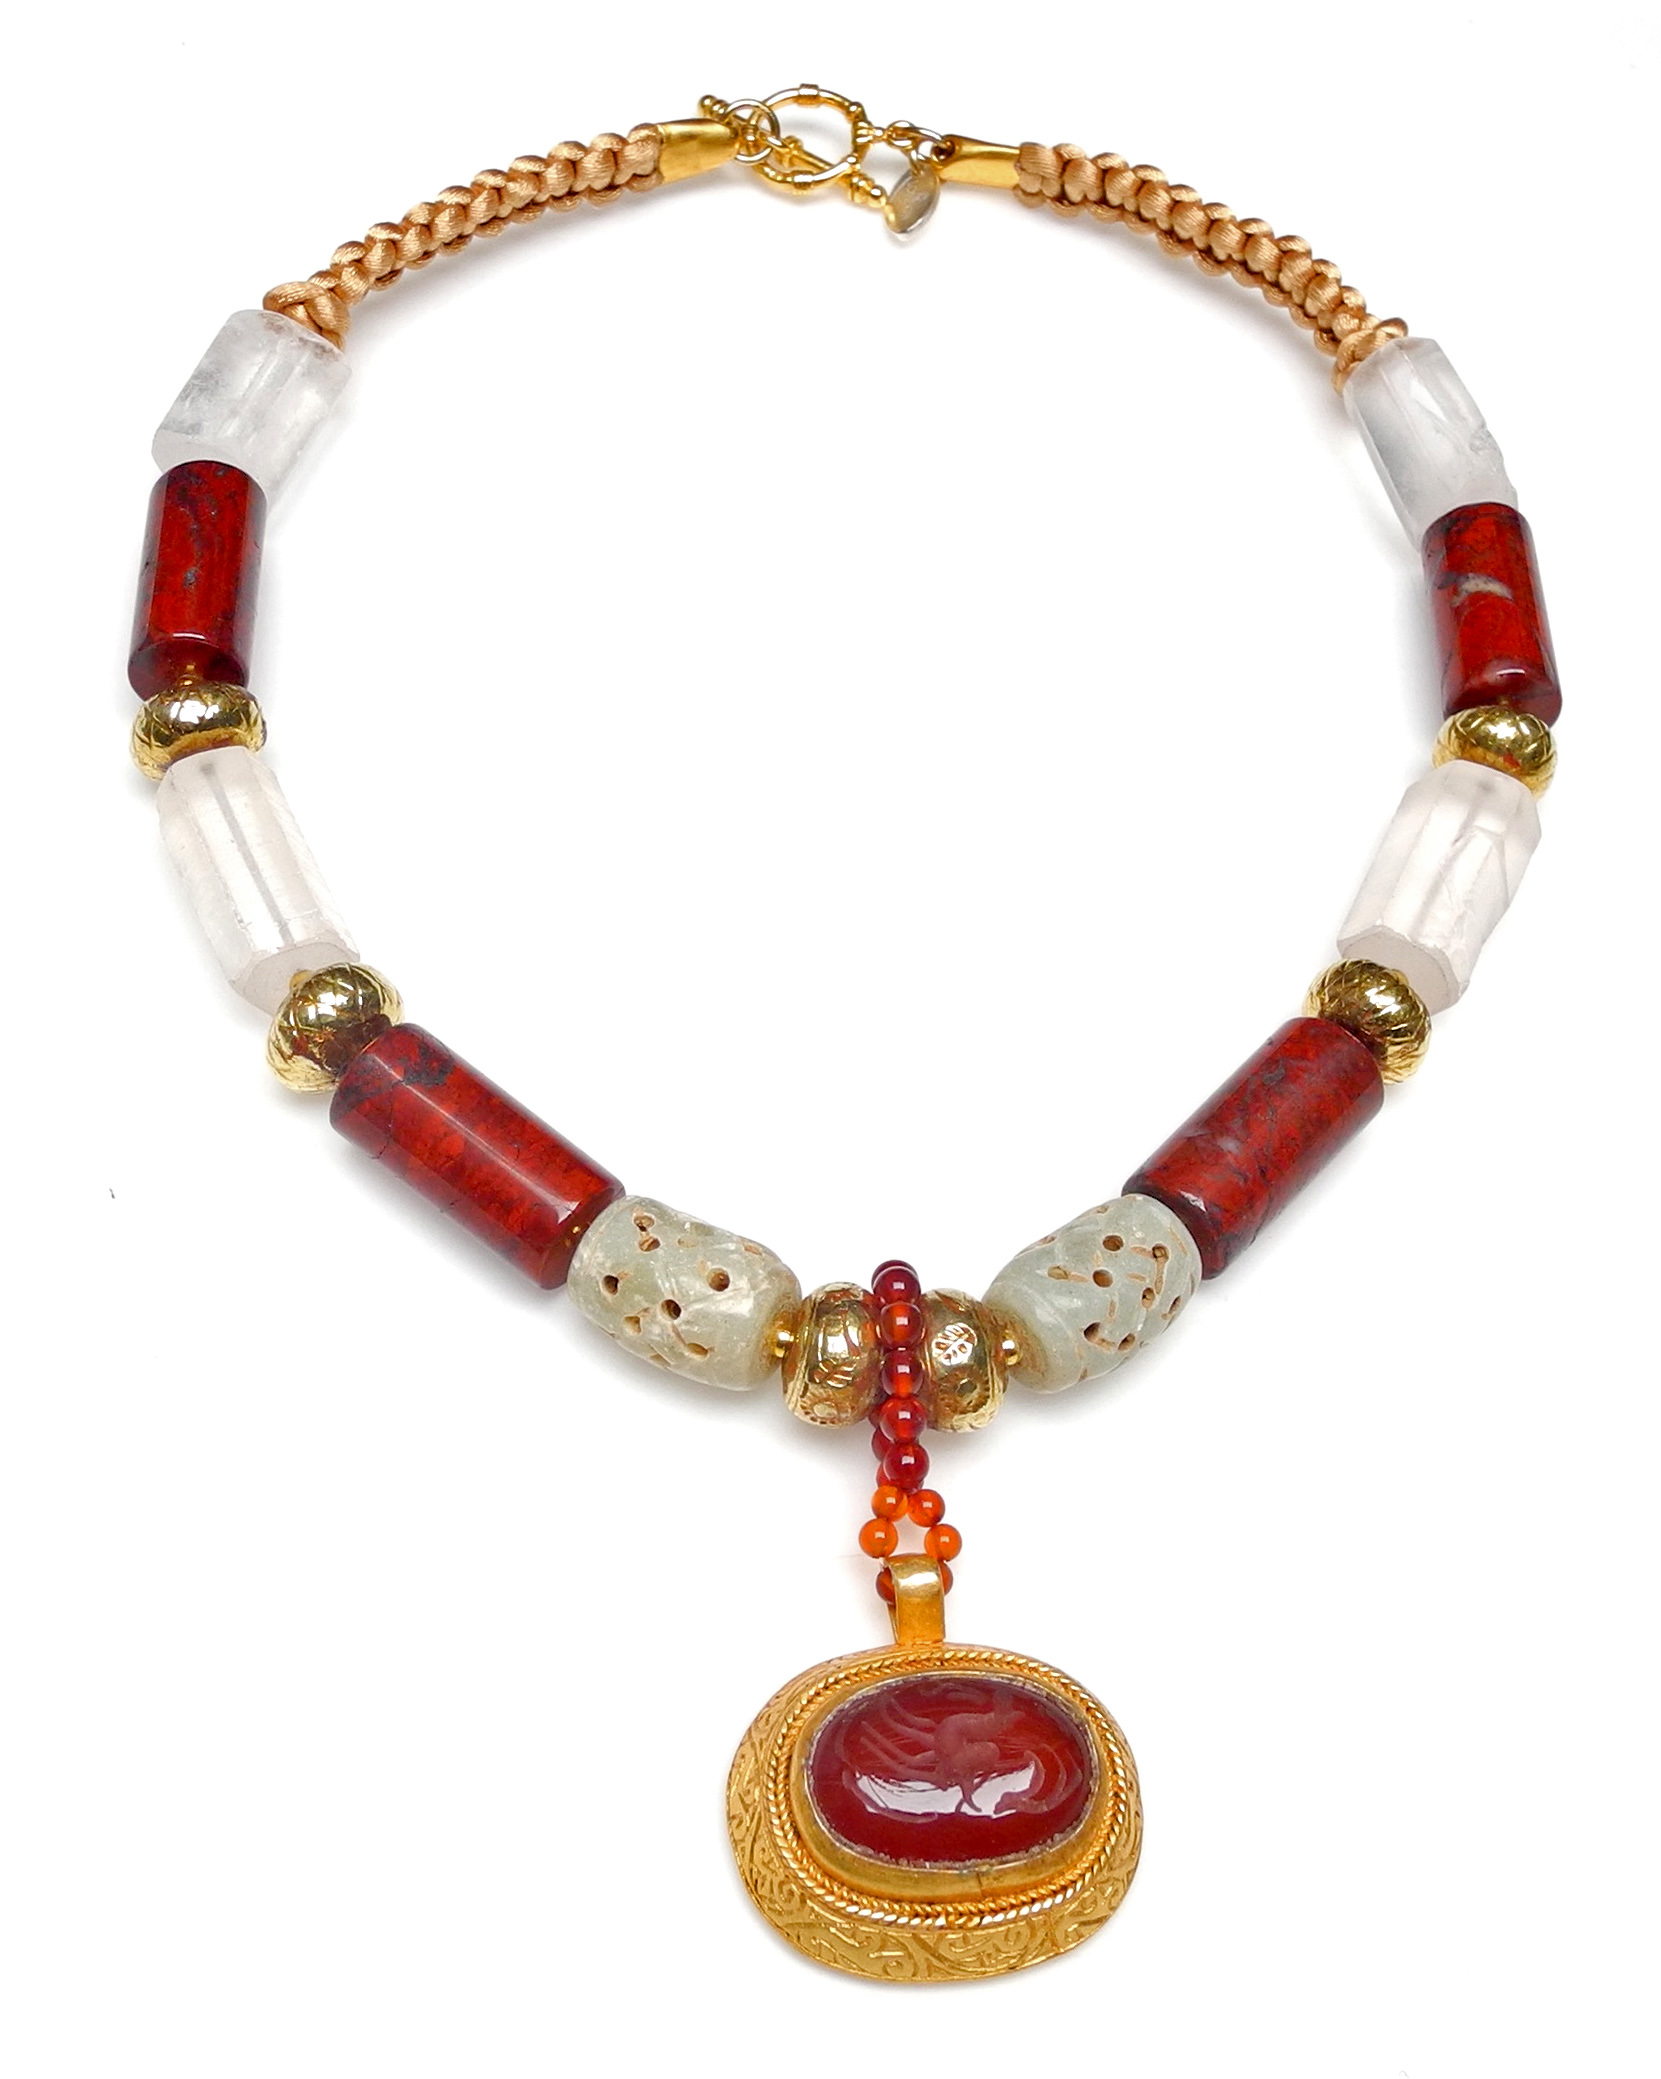 Natural Carnelian Intaglio Set In 18 Ct Gold On Silver On Necklace Of 18 Ct Gold Calcified Jade Crystal And Natural Jasper Goruntuler Ile Taki